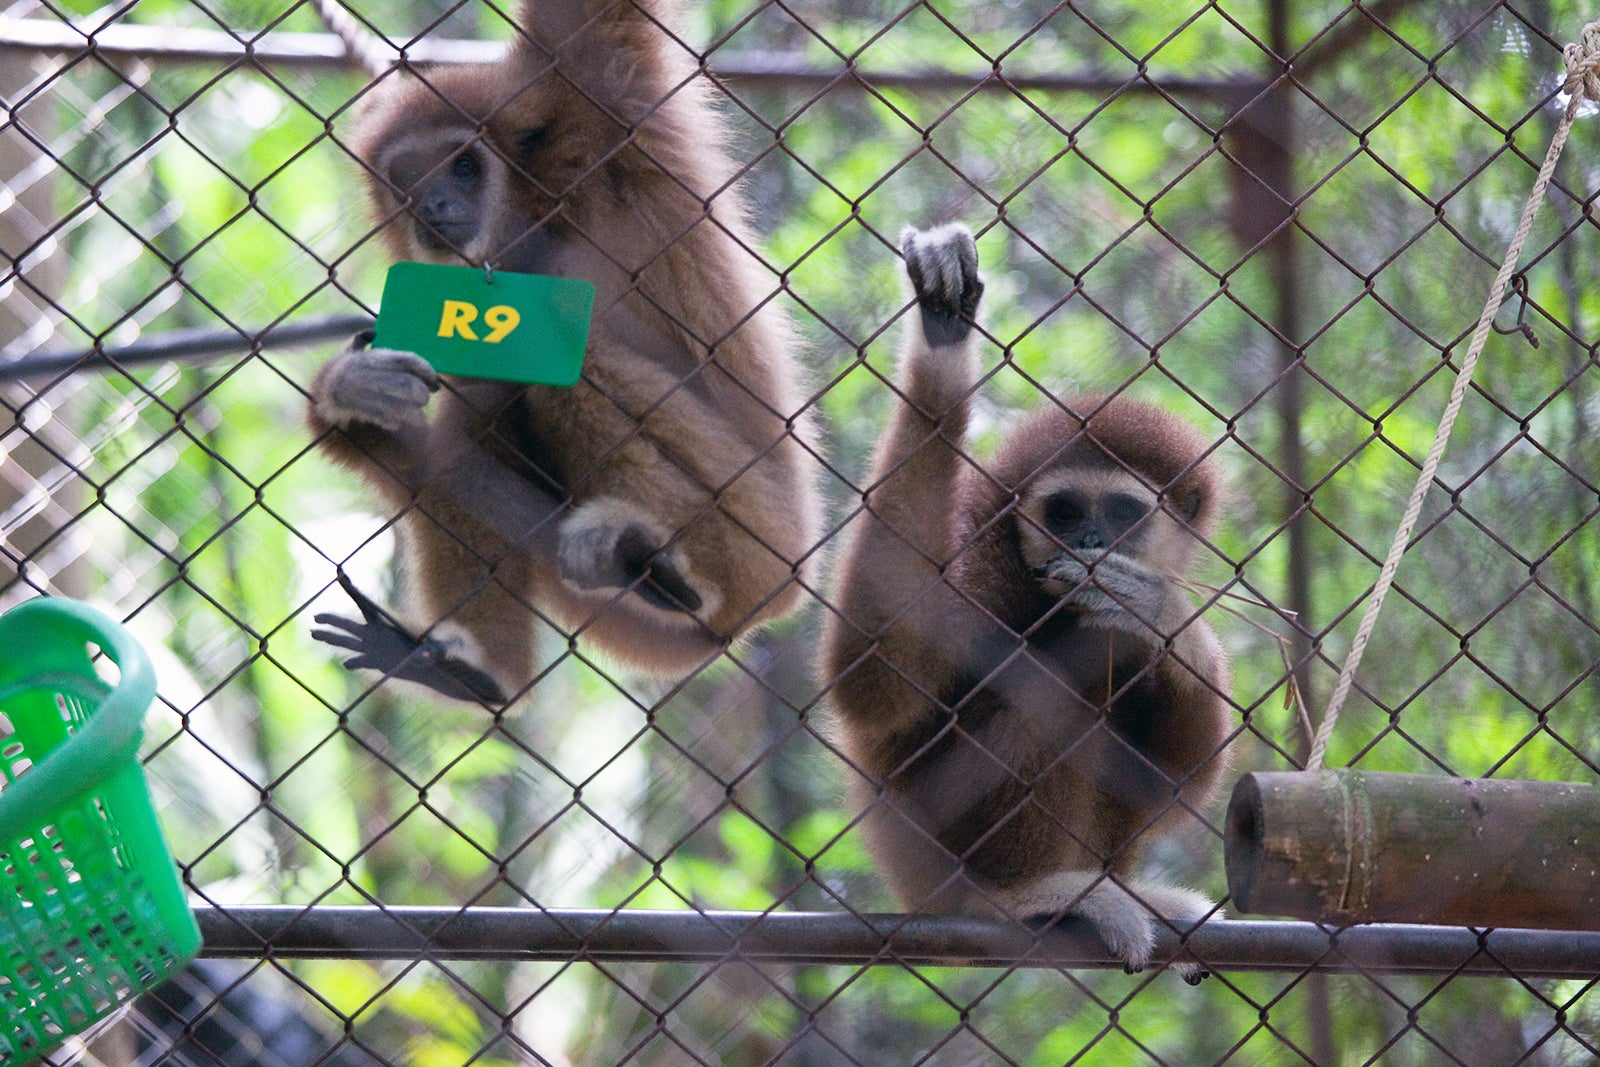 Gibbon Rehabilitation Project - Wildlife Conservation in